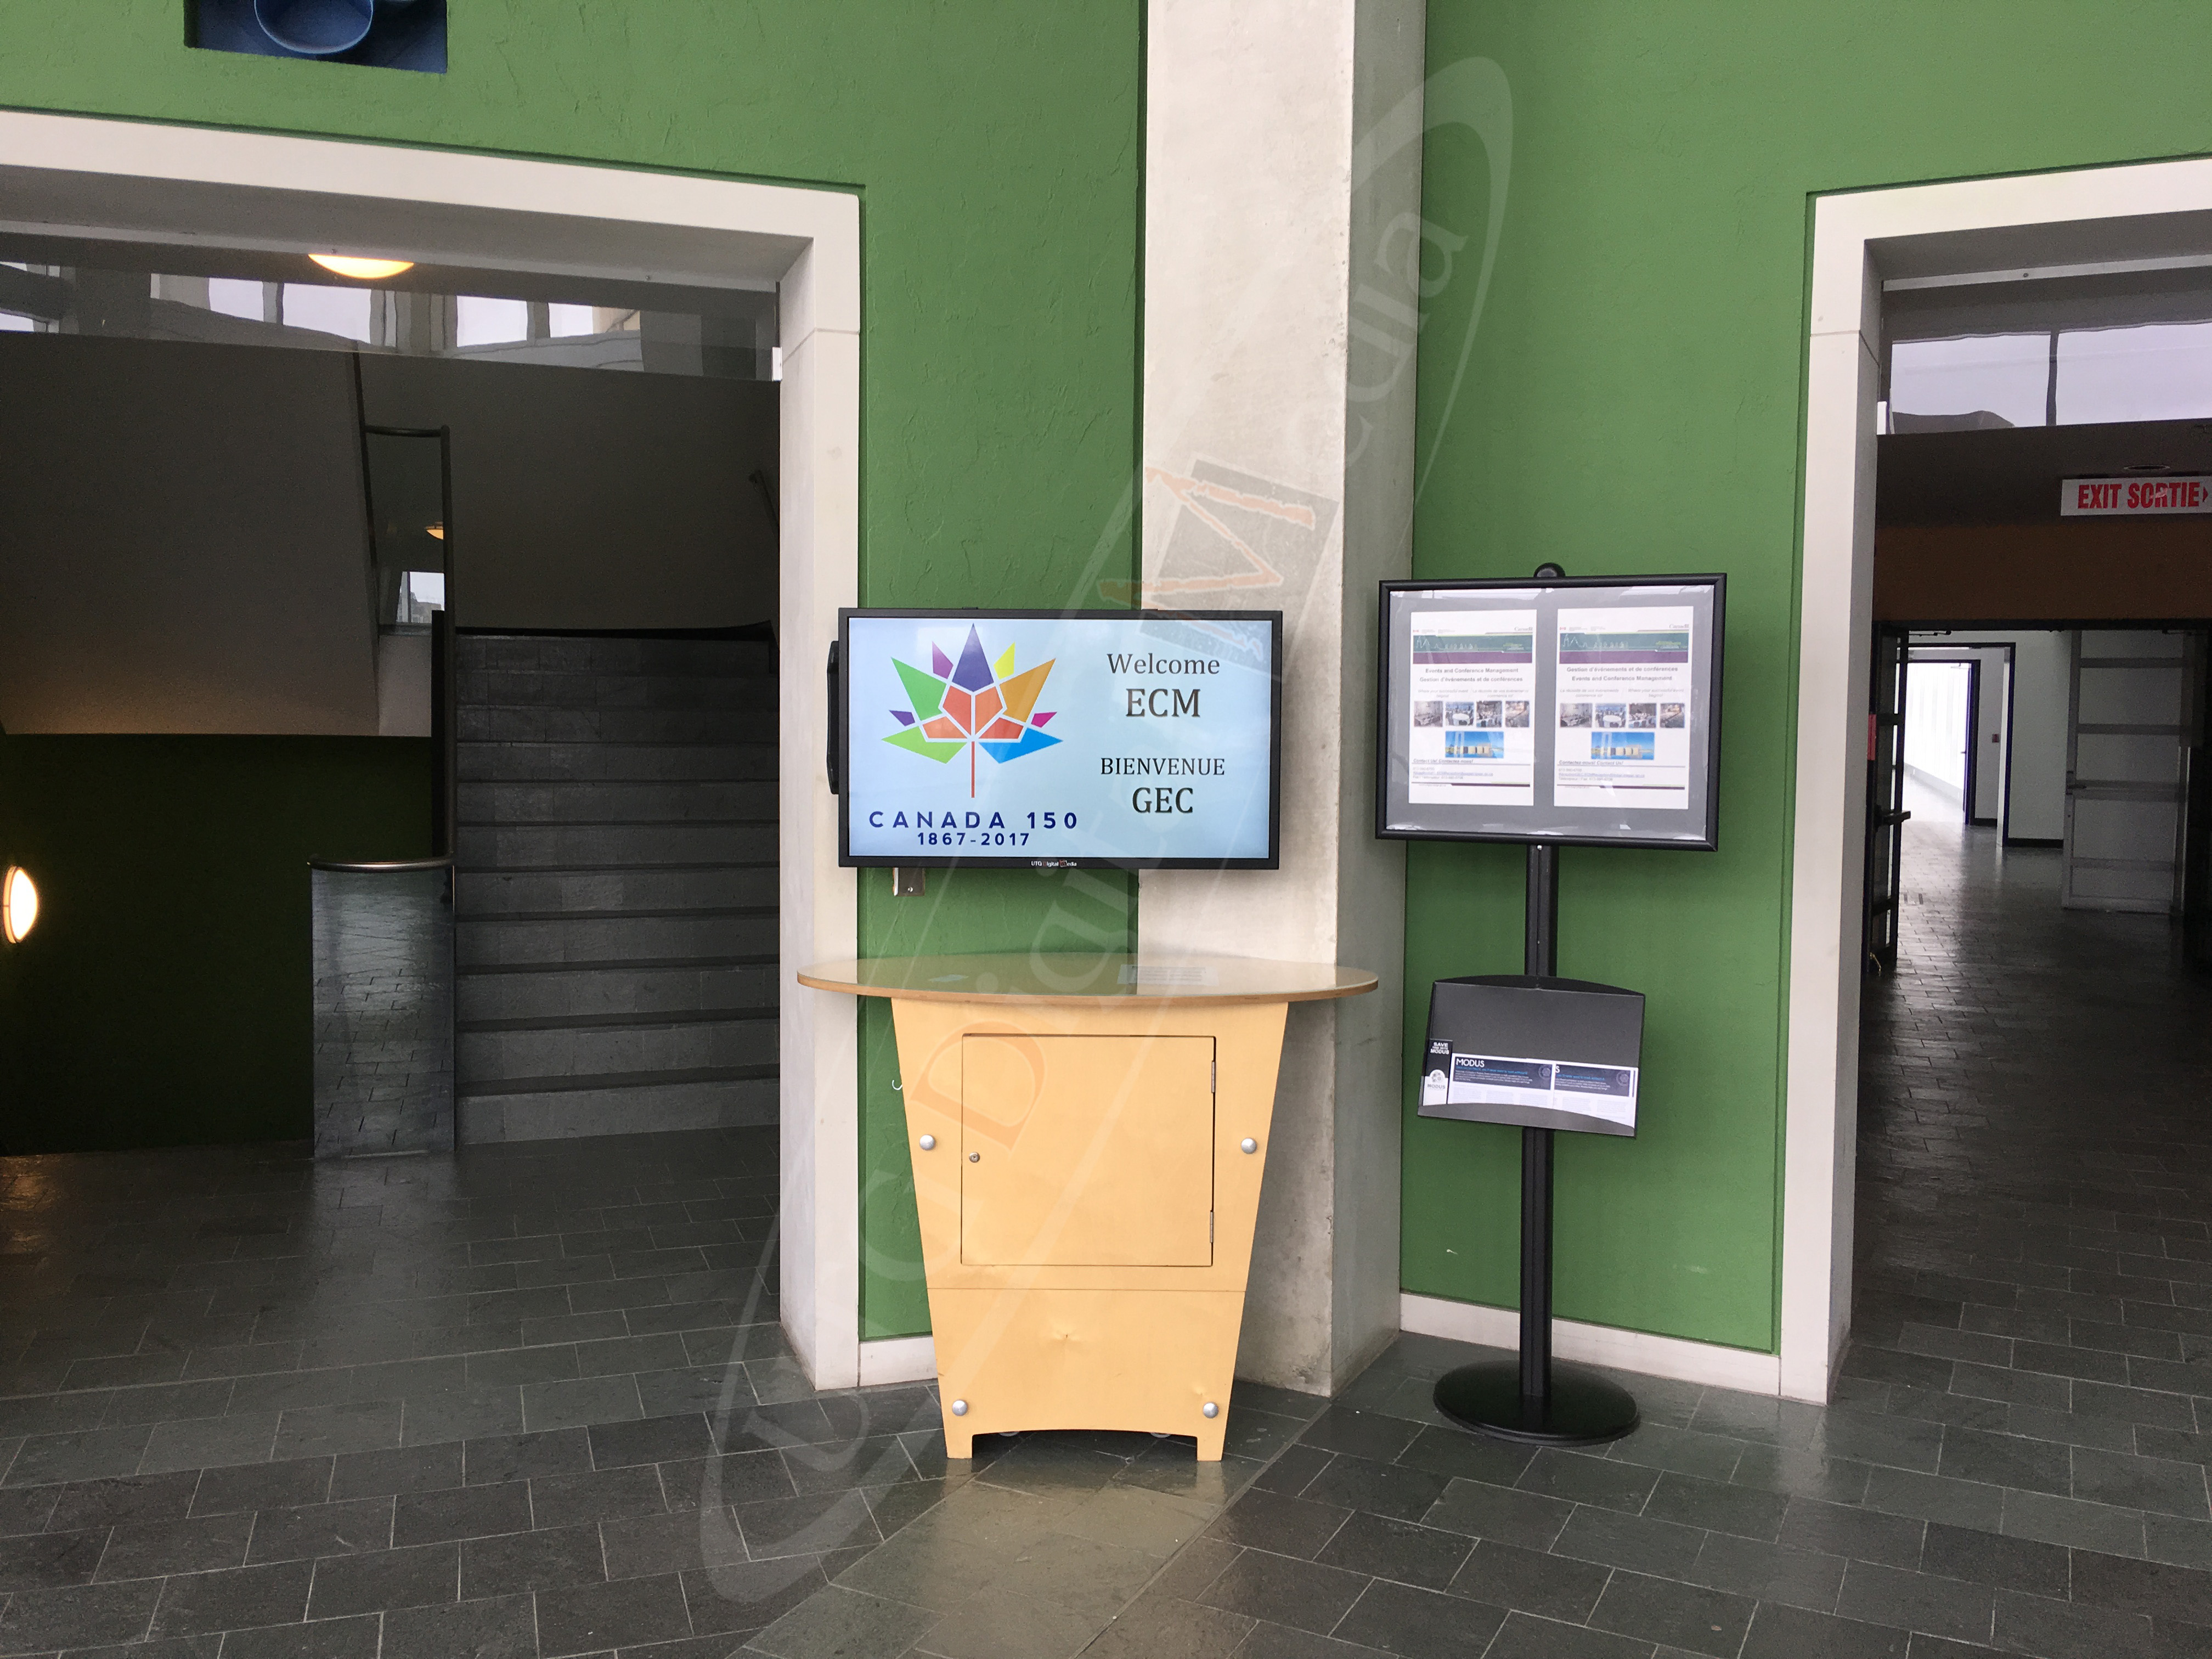 PWGSC – Government of Canada – Wall Mounted LCD Screen